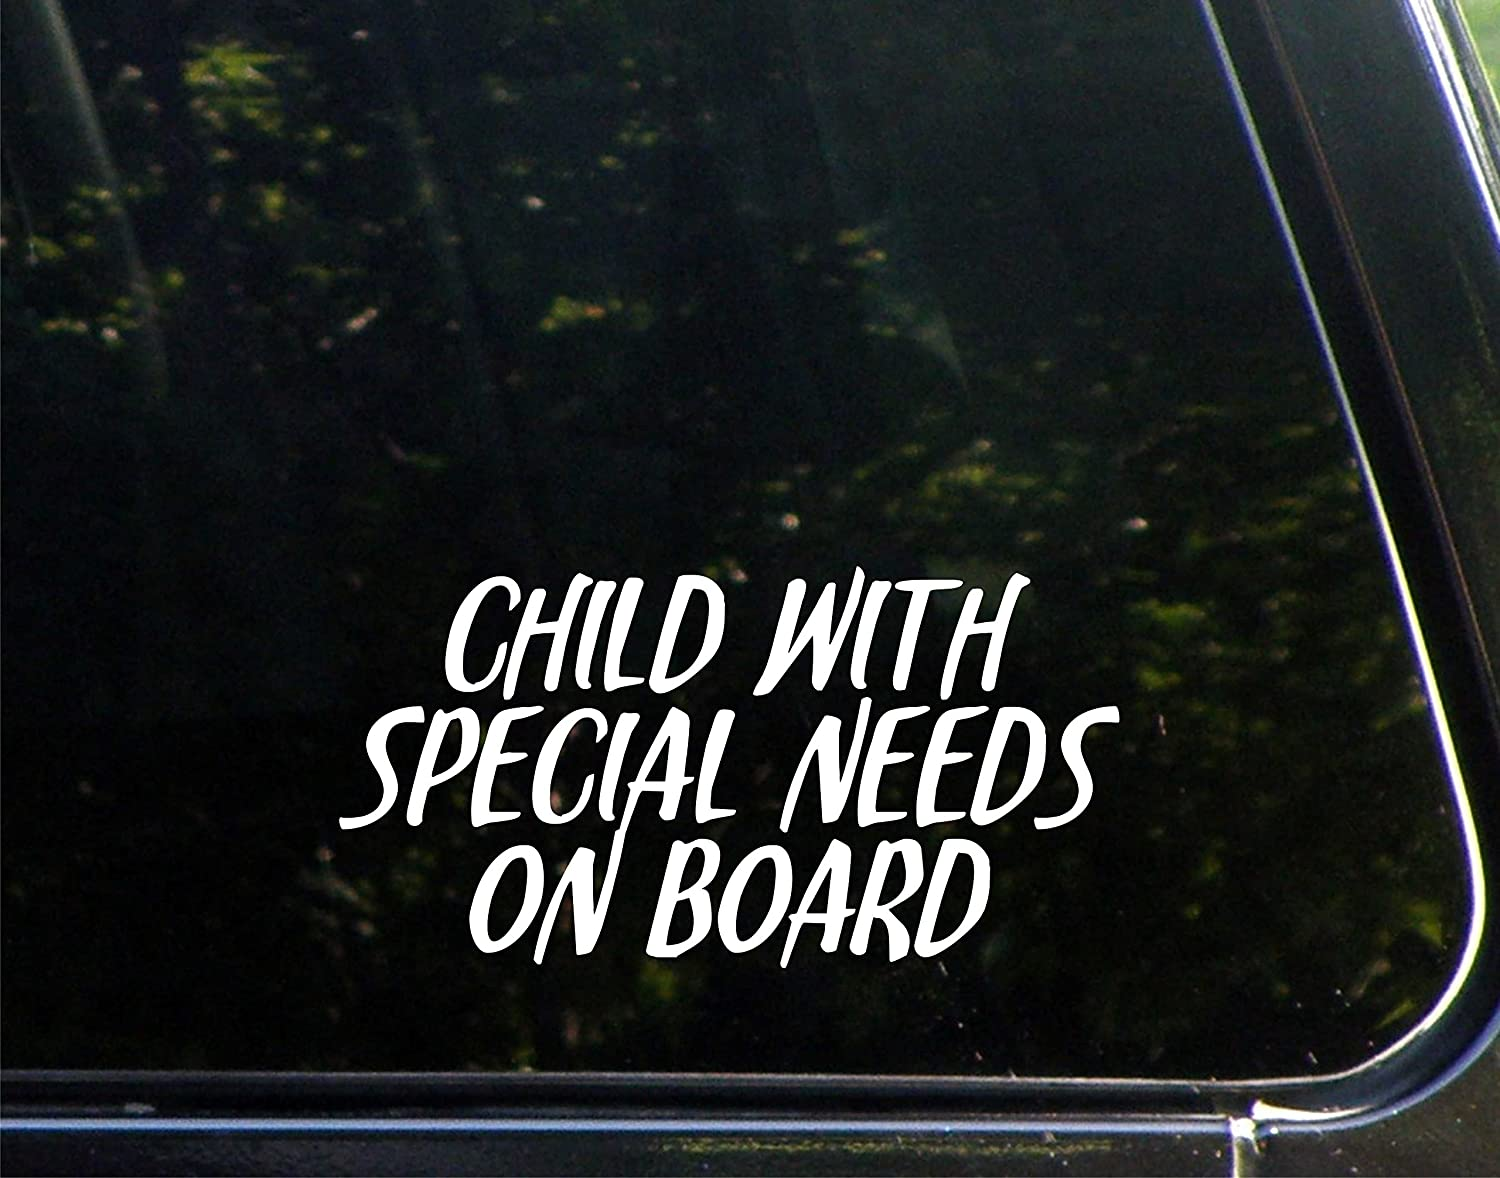 """Vinyl Productions Child with Special Needs On Board - 5-3/4"""" x 3-3/4"""" - Decal Sticker for Cell Phones,Windows, Bumpers, Laptops, Glassware etc."""